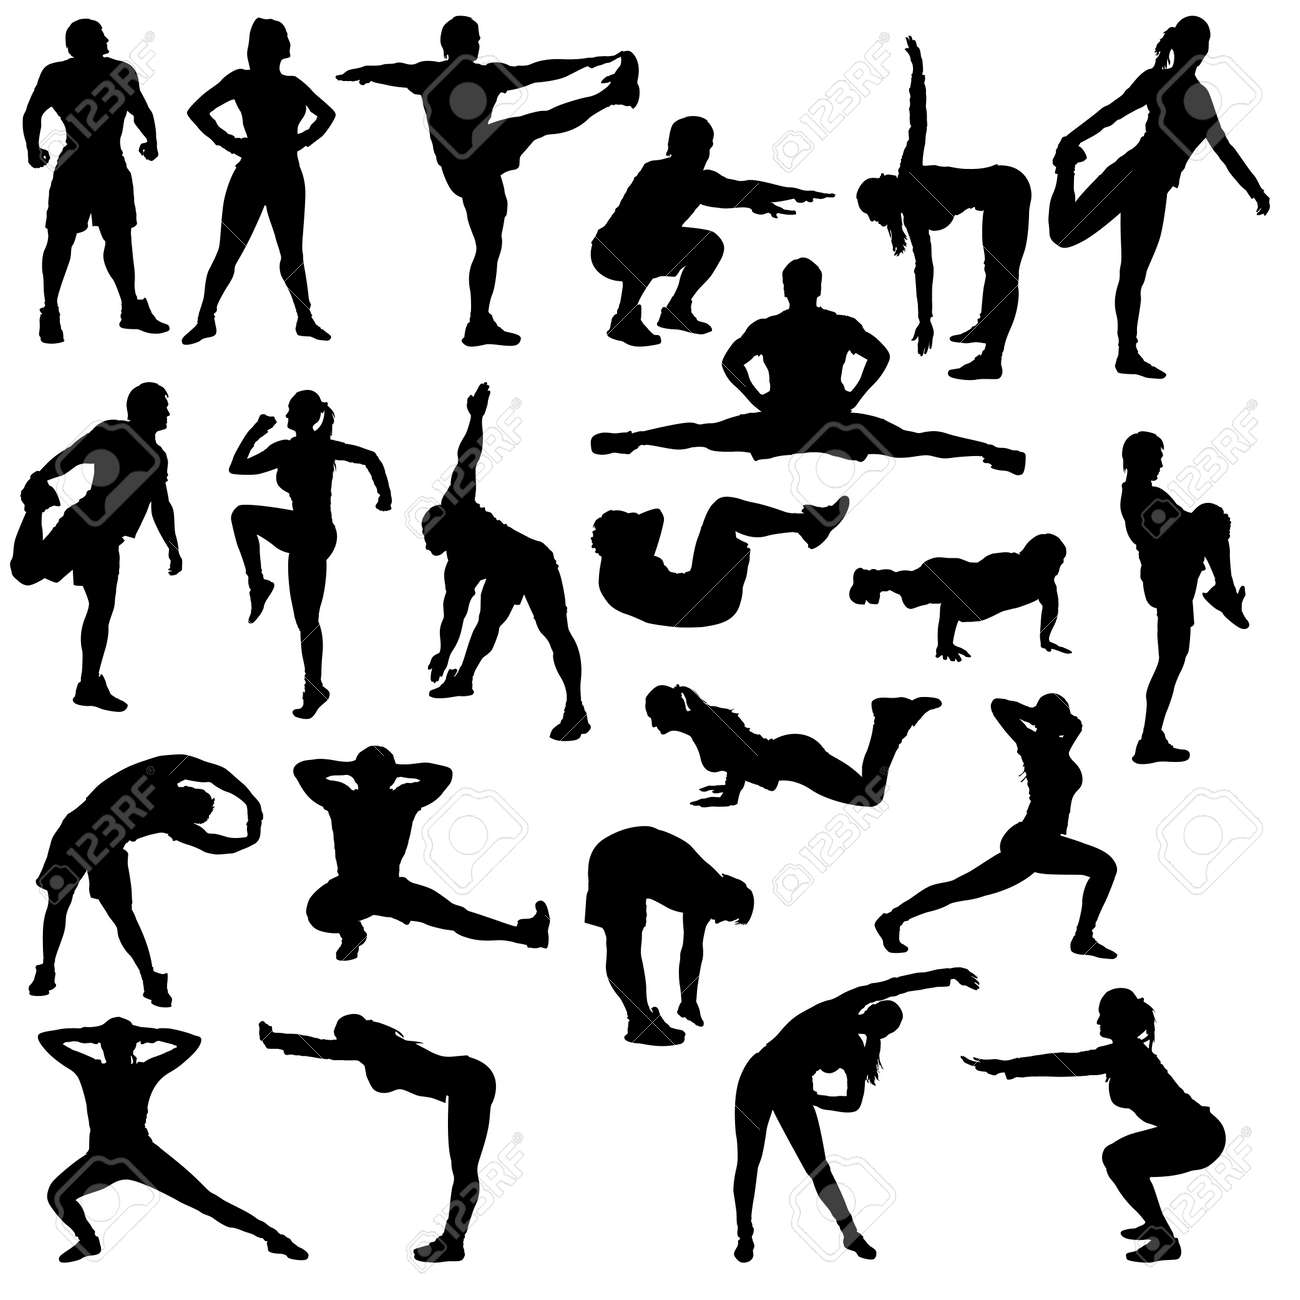 big set for gym. there are a lot of different poses man and woman - 51895543